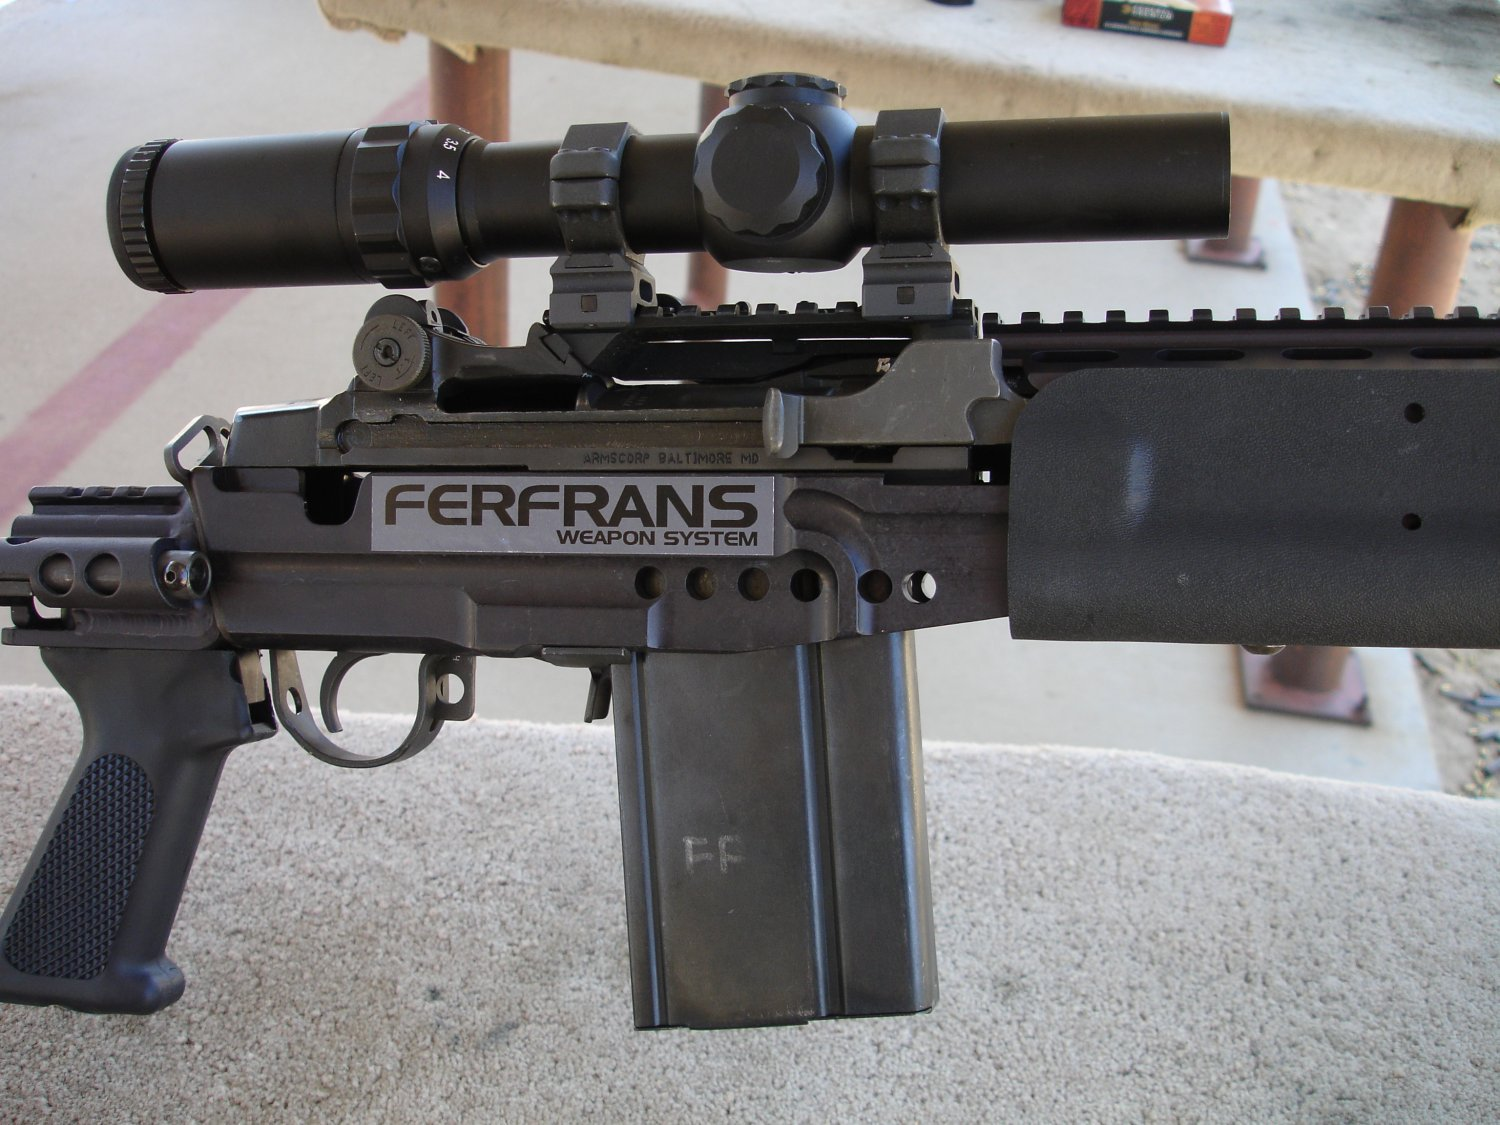 FERFRANS SOPMOD M14 M1A EBR 18 <!  :en  >FERFRANS SOAR Select Fire SBRs and Carbines, and GRSC Combat Rifle Scope (CRS) at the Range<!  :  >